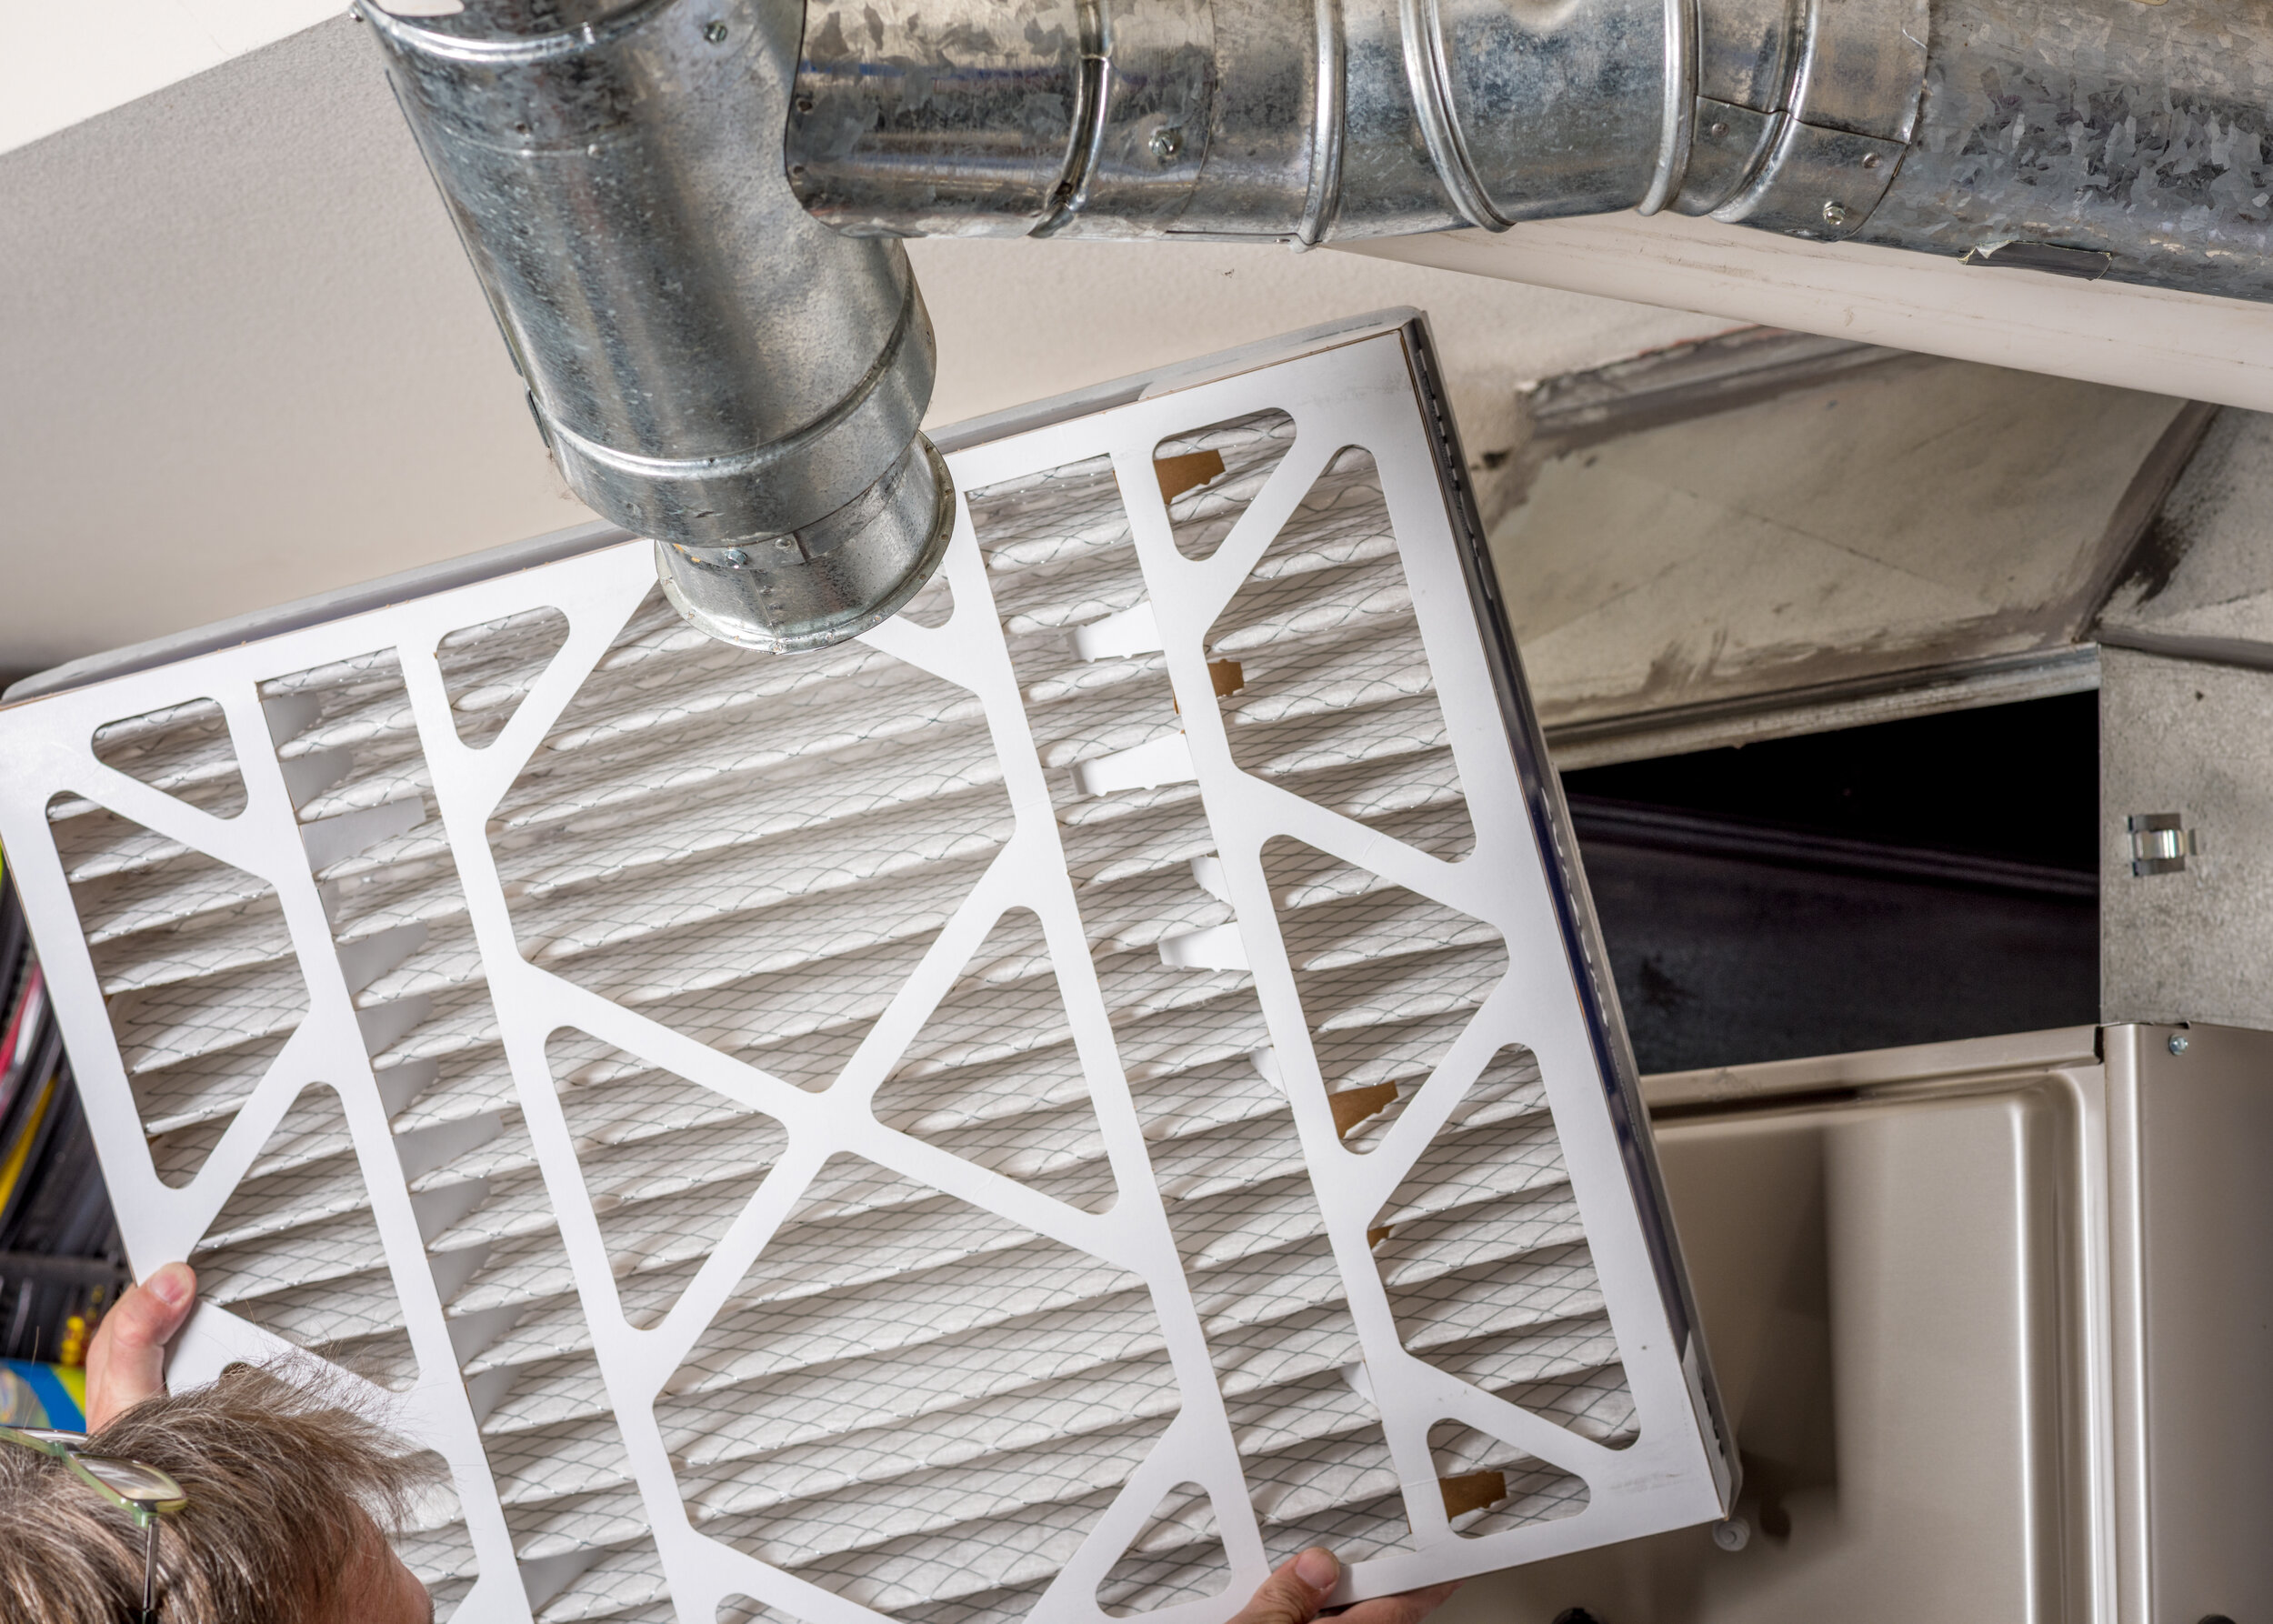 Best Furnace Filters   Disclaimer: There are affiliate links in this post. This means that at no cost to you, I will receive a small commission if you purchase through my link. I will only ever promote the products and services that I trust and 100% recommend. You may read my full  disclosure policy  for more information. Thanks for supporting my business in this way.